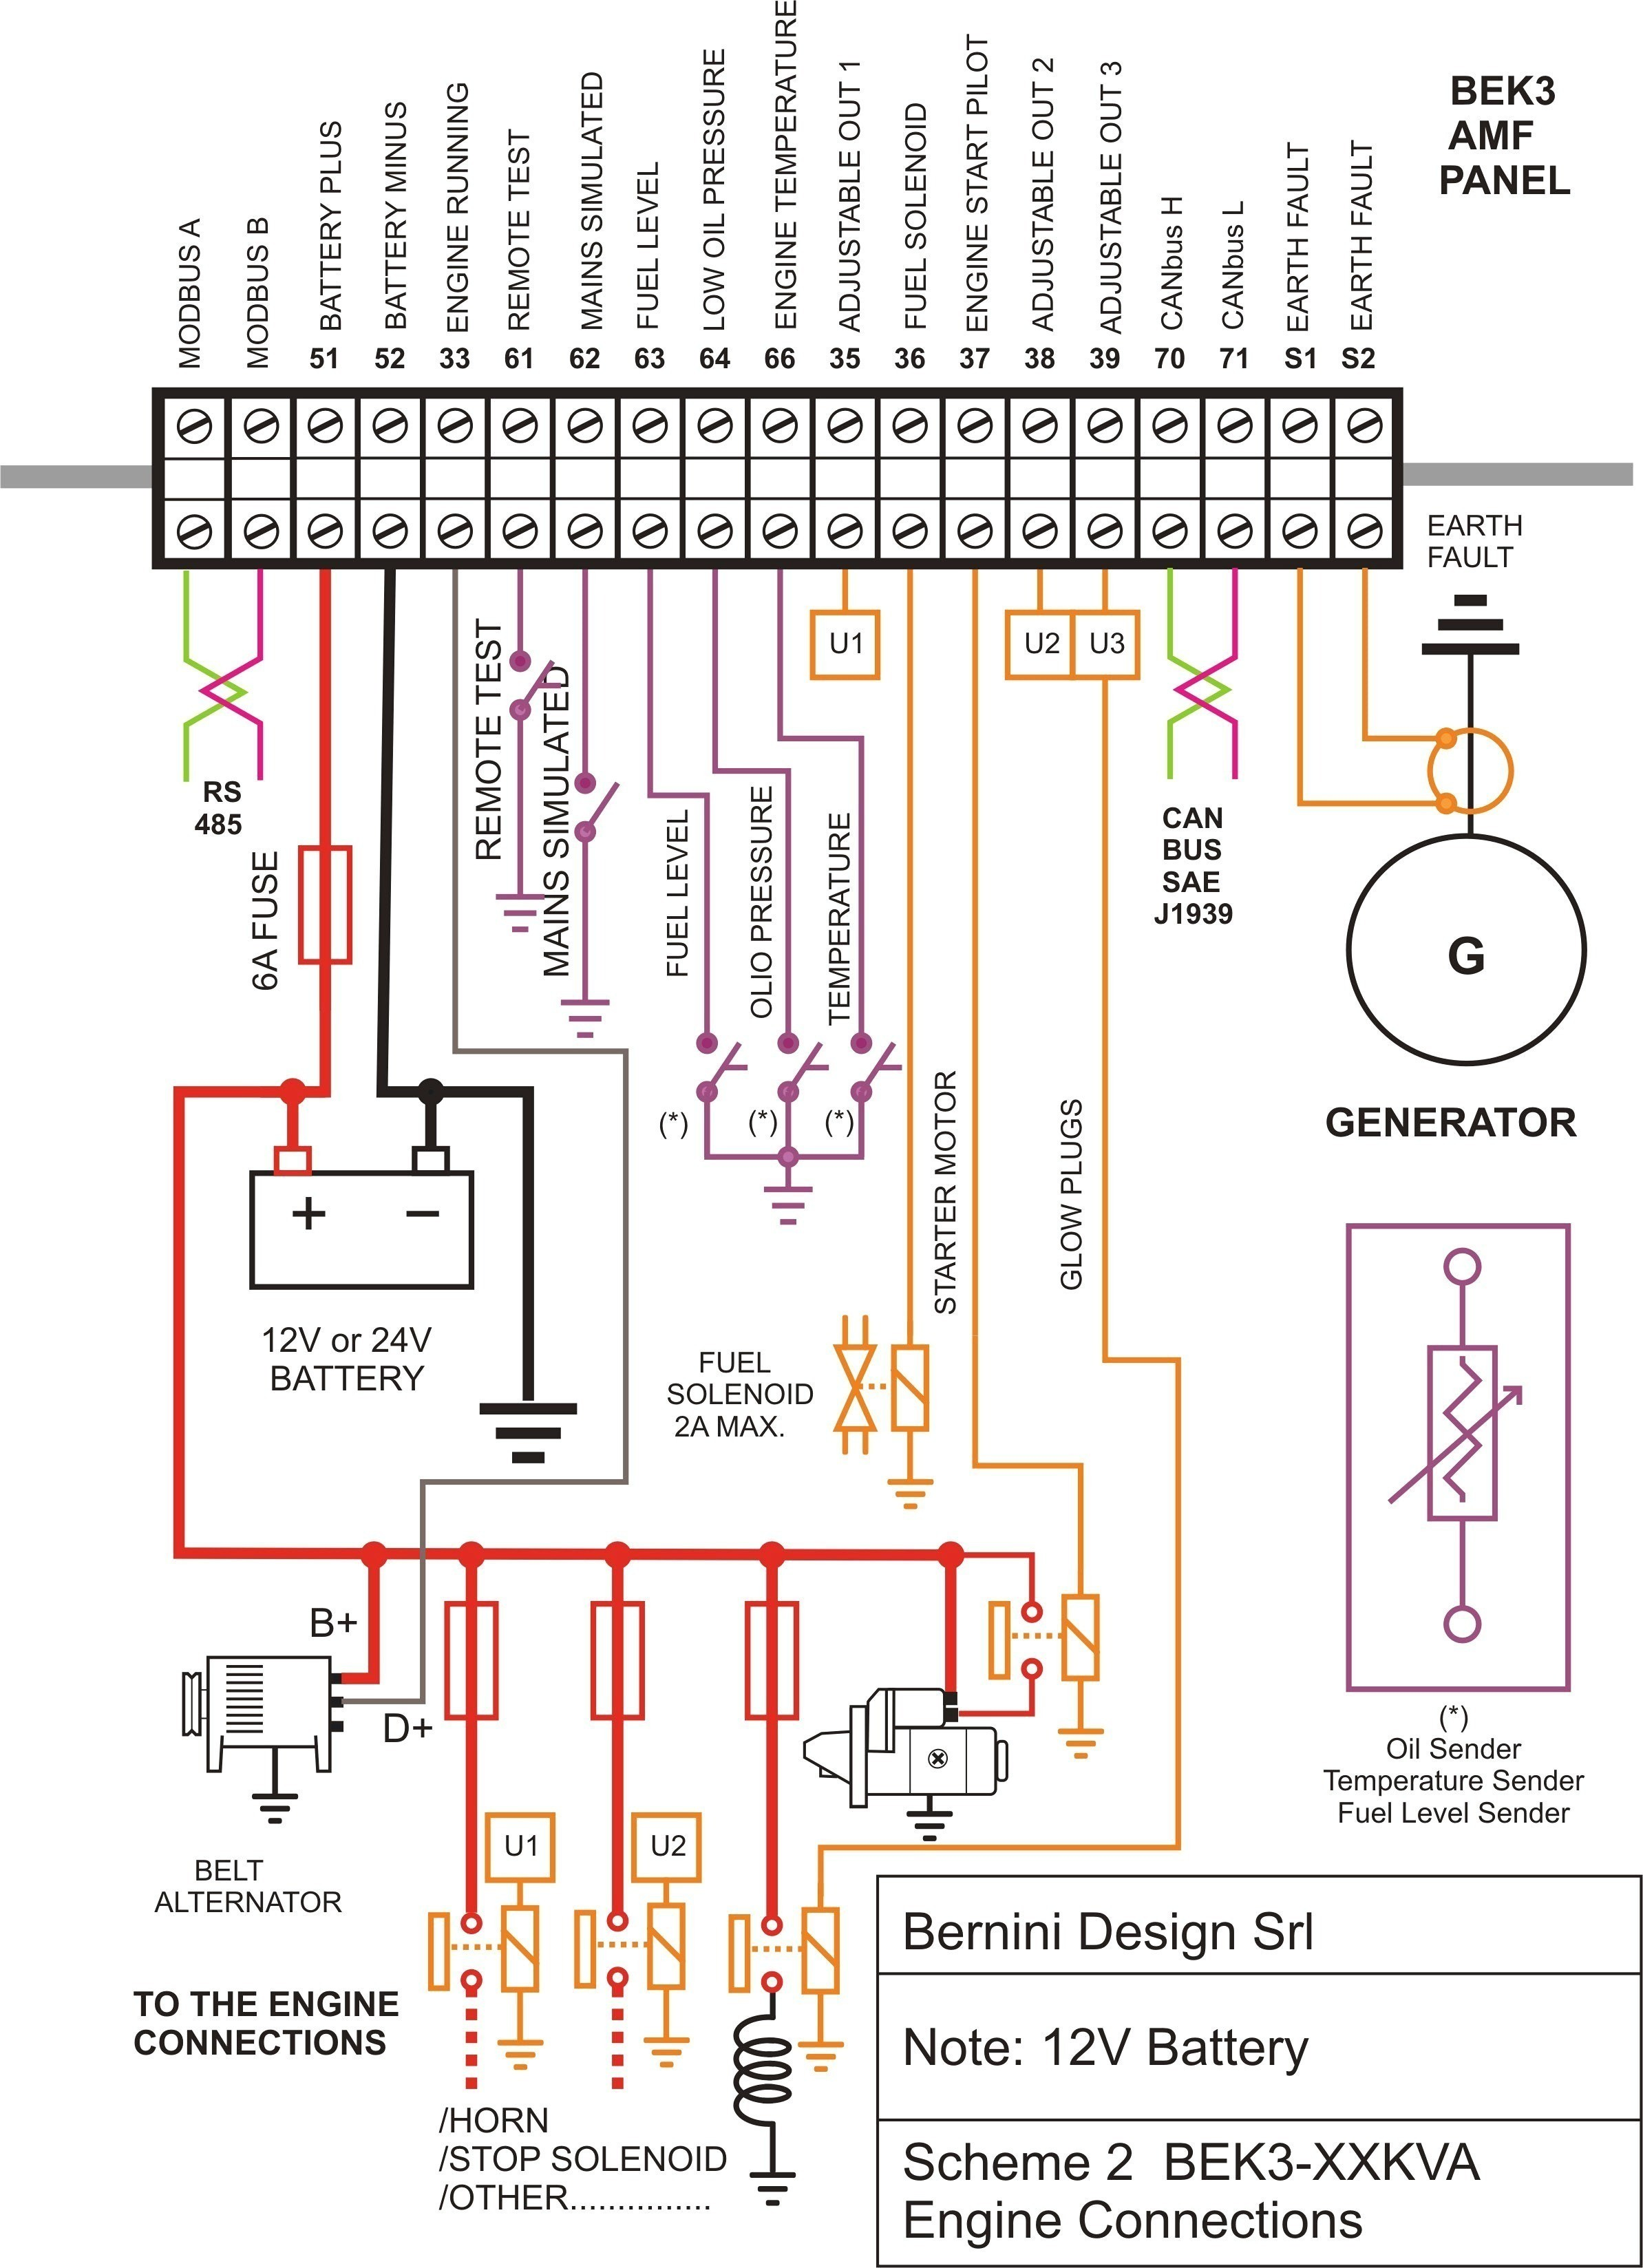 Tarp Switch Wiring Diagram Wire Data Schema For A Two Way Electric Explained Diagrams Rh Dmdelectro Co Reversing 2